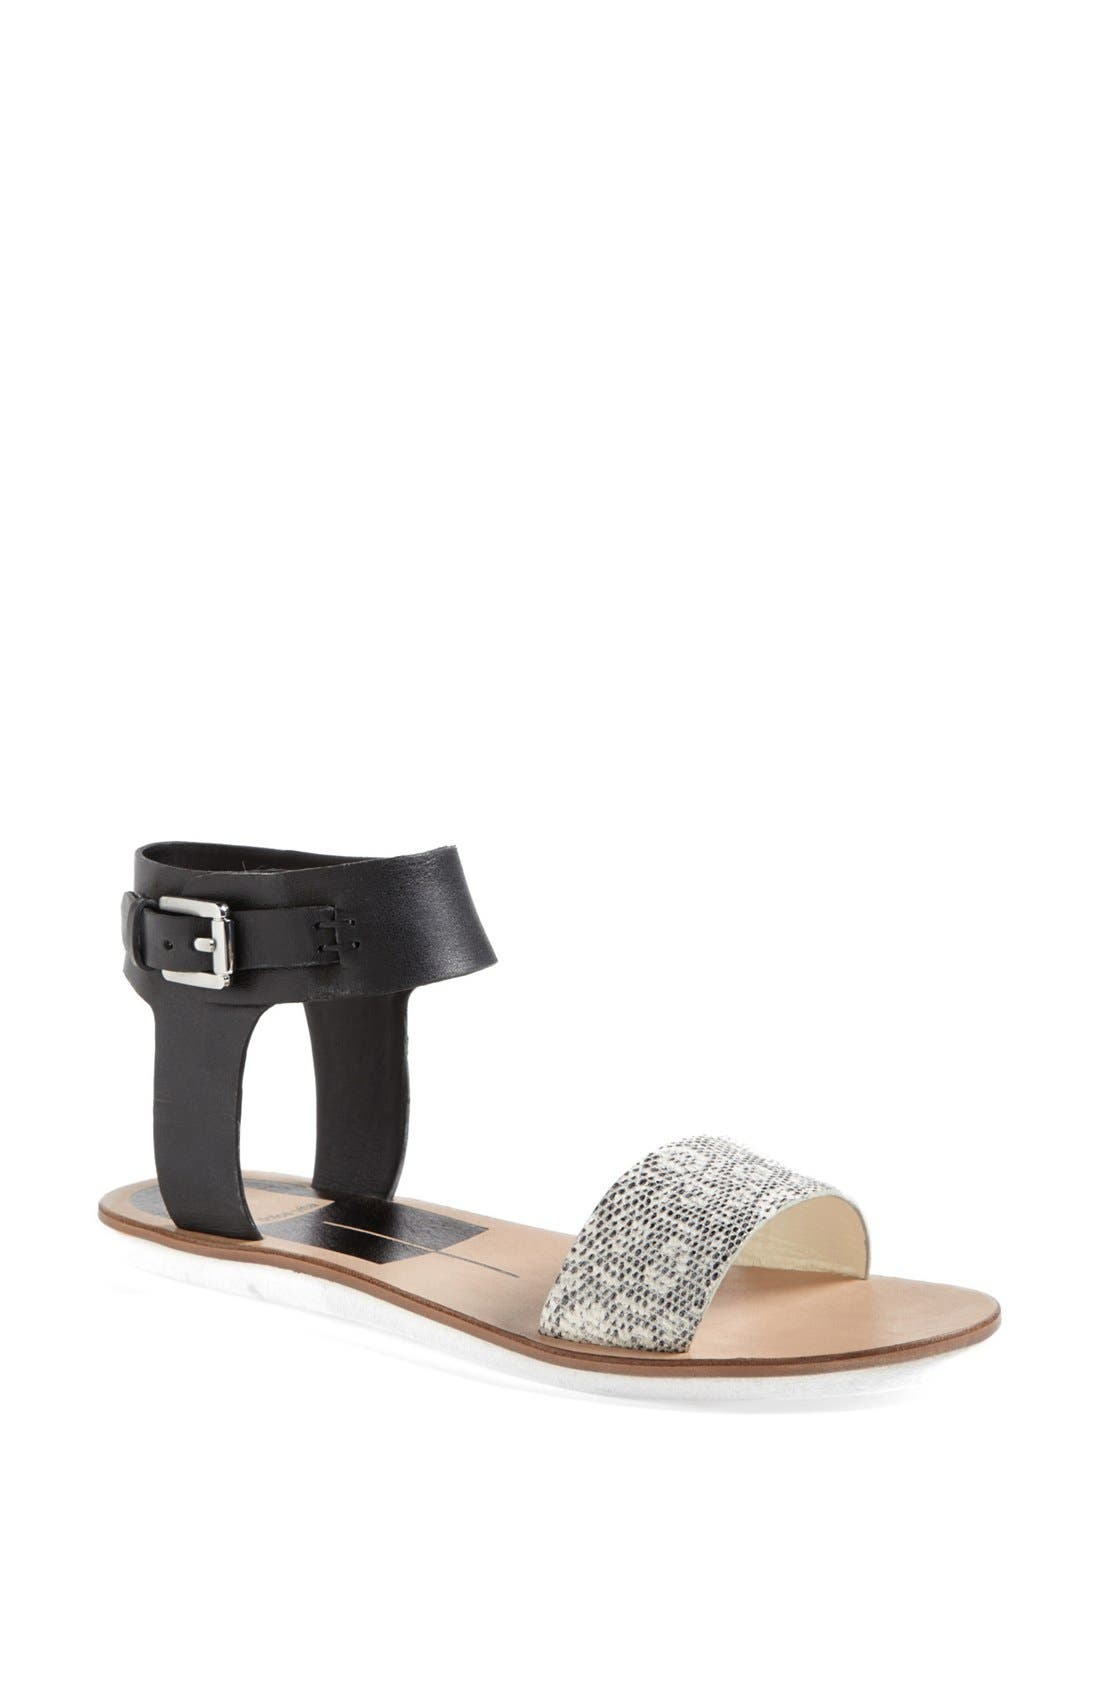 Alternate Image 1 Selected - Dolce Vita 'Naria' Sandal